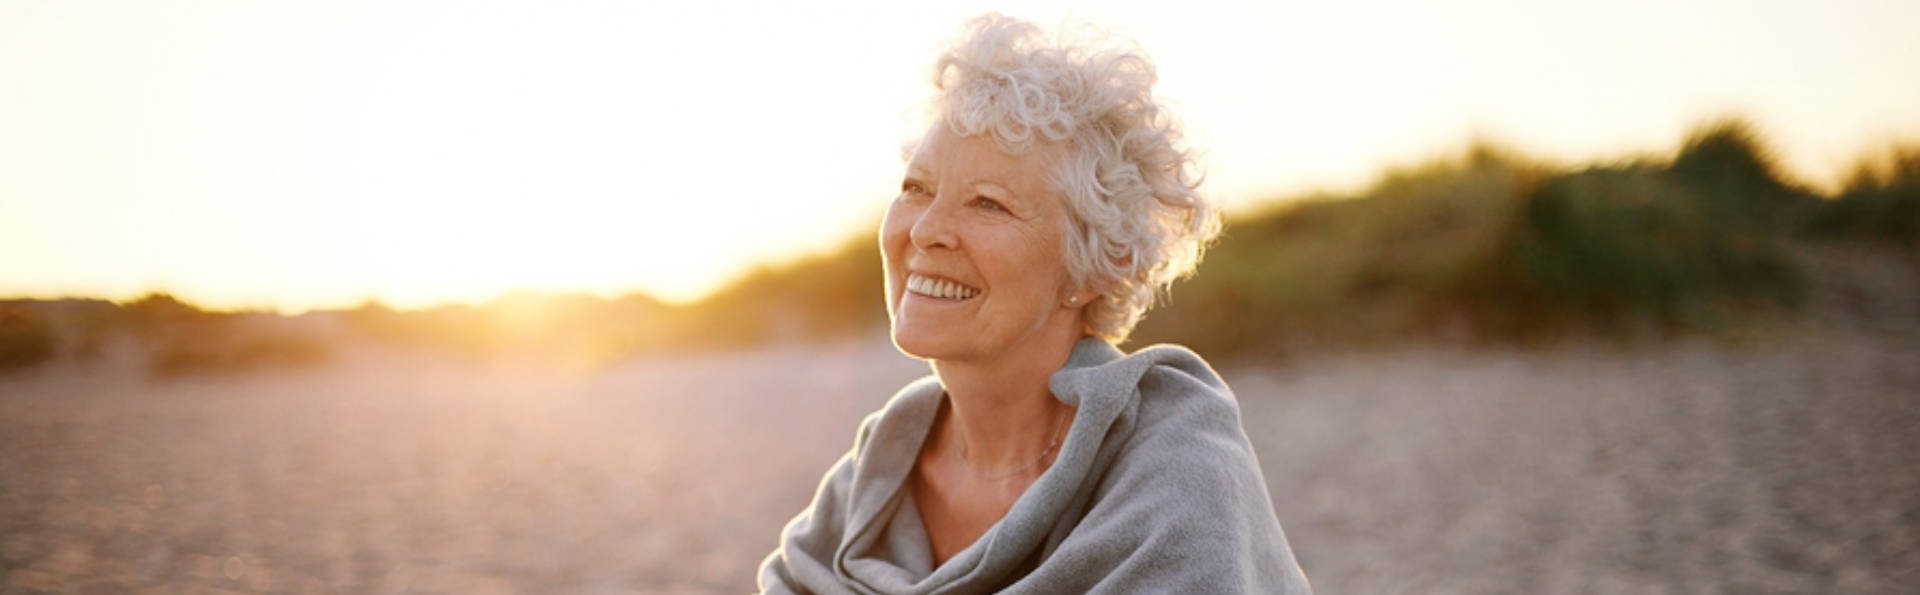 Smiling Older Woman After Restorative Dental Care from Jefferson Dental Care GA